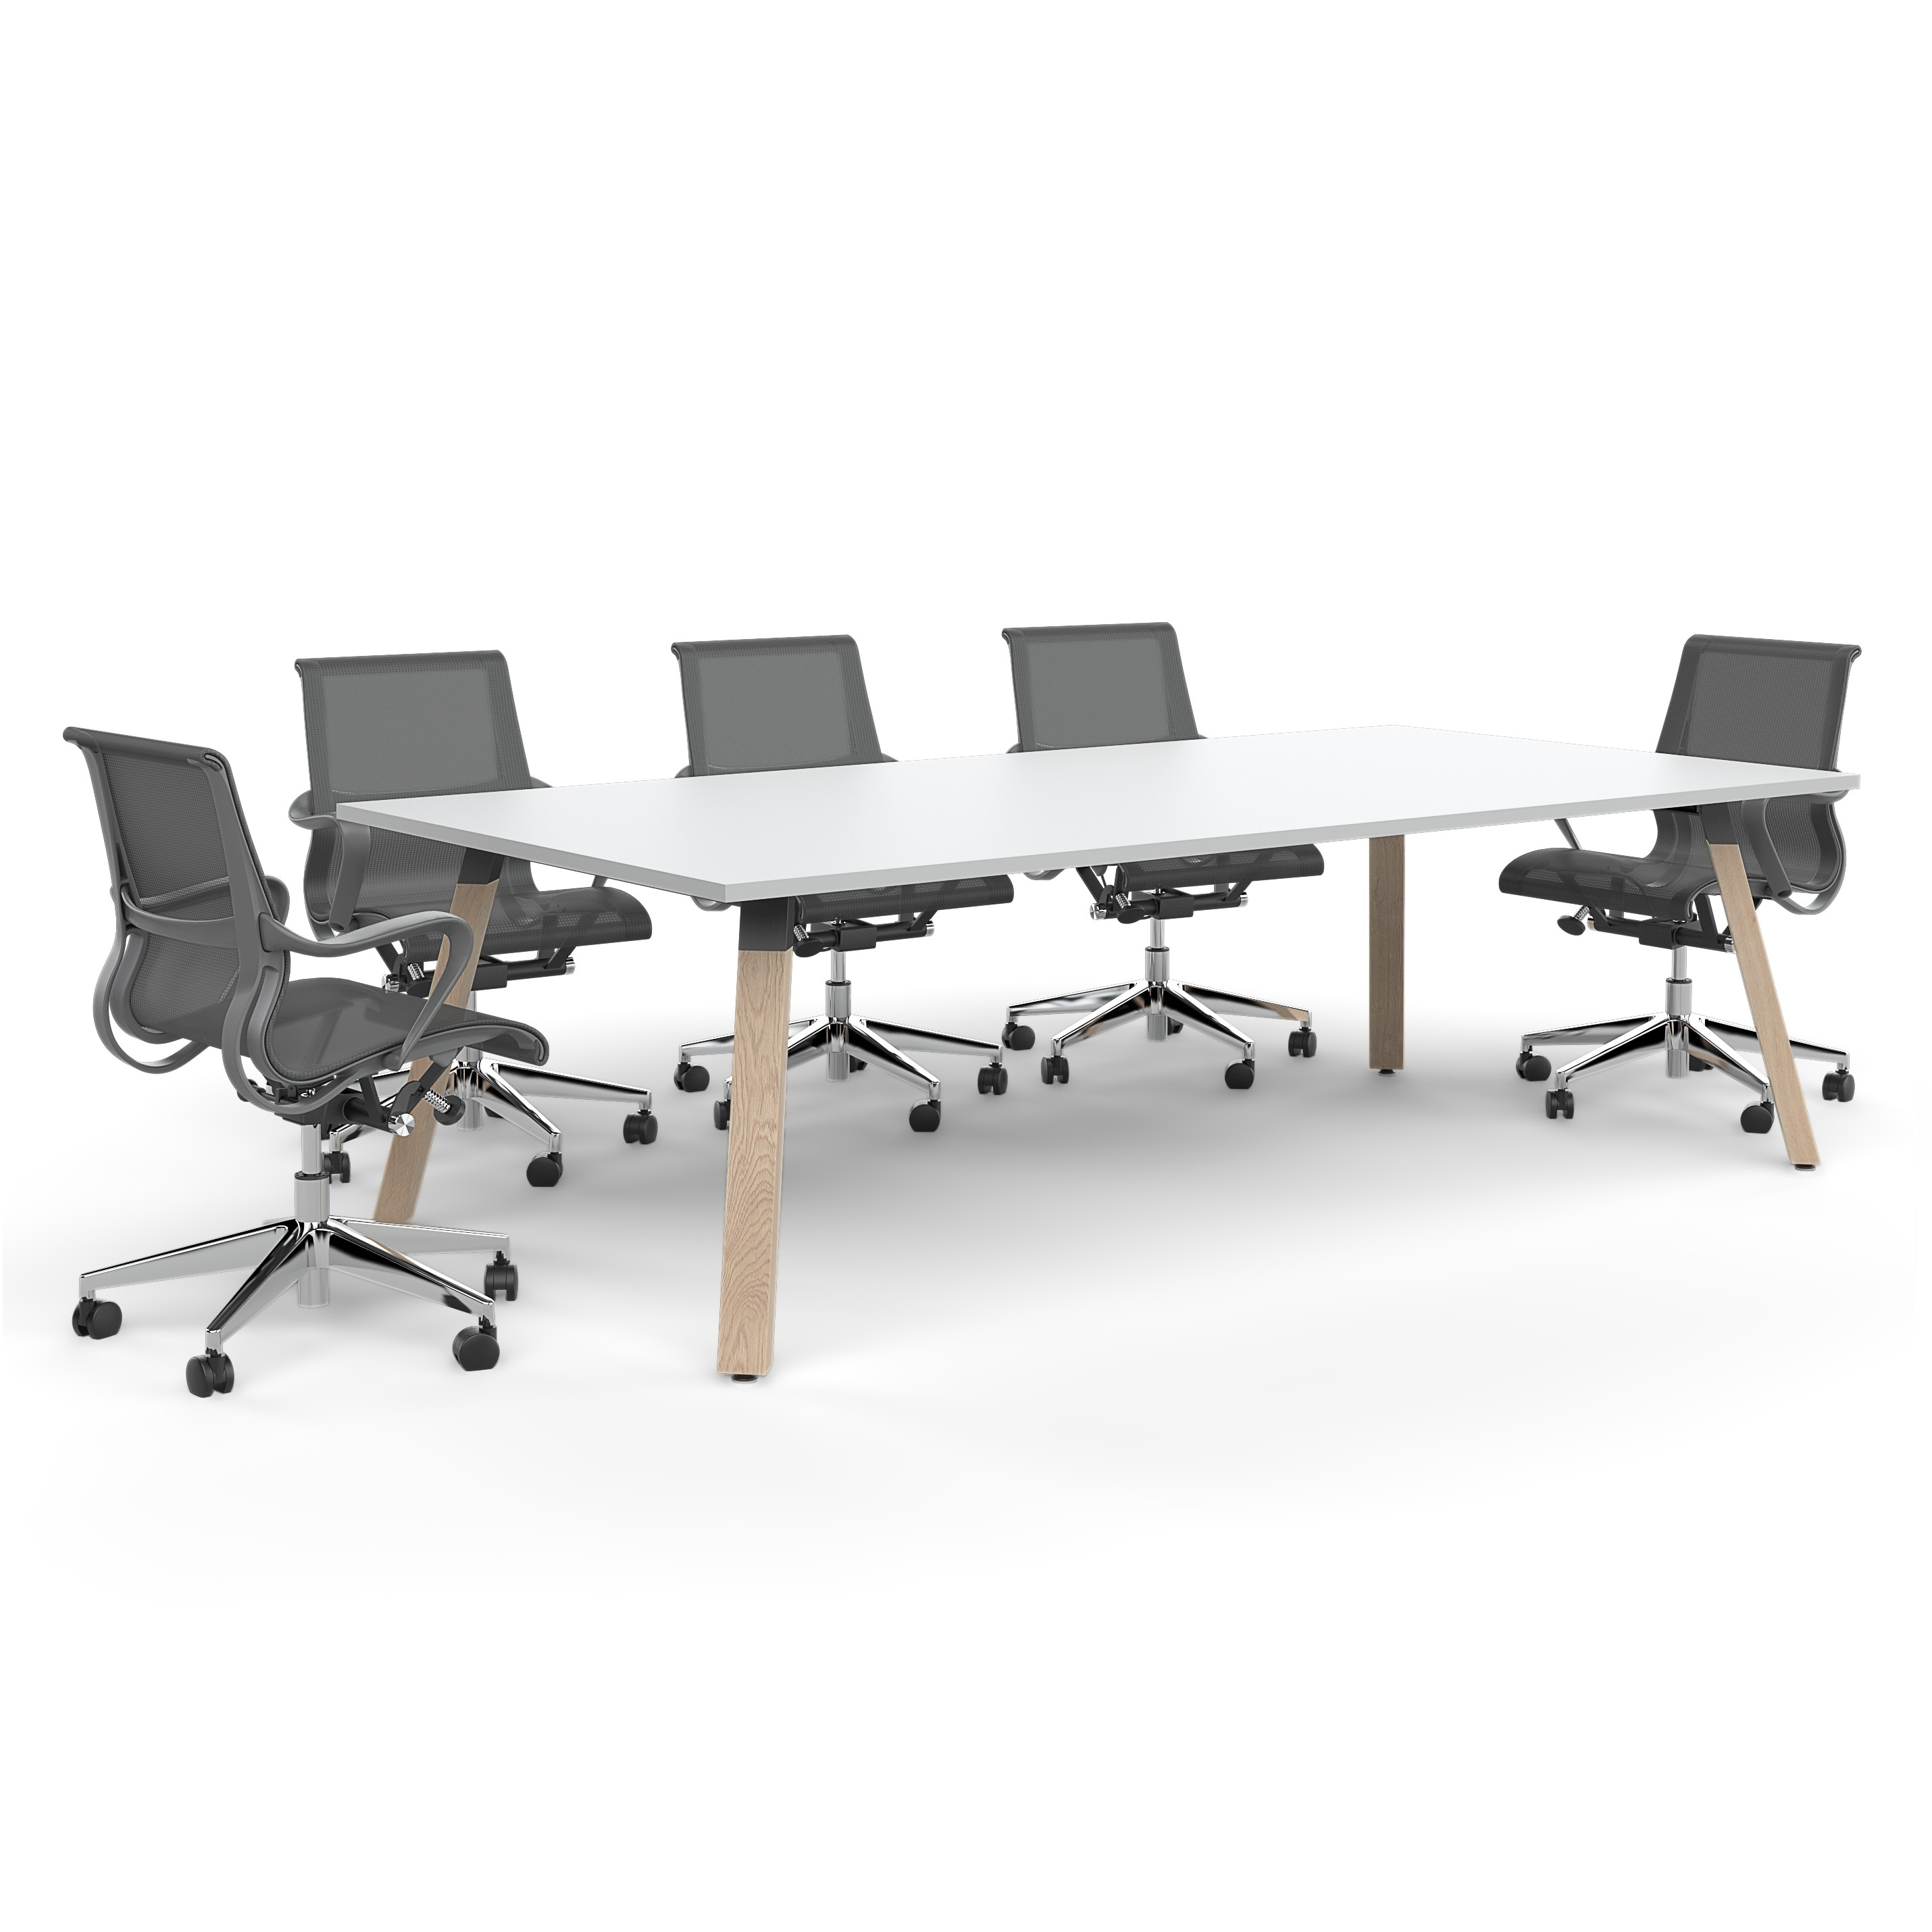 Nordic Meeting Table With Chairs